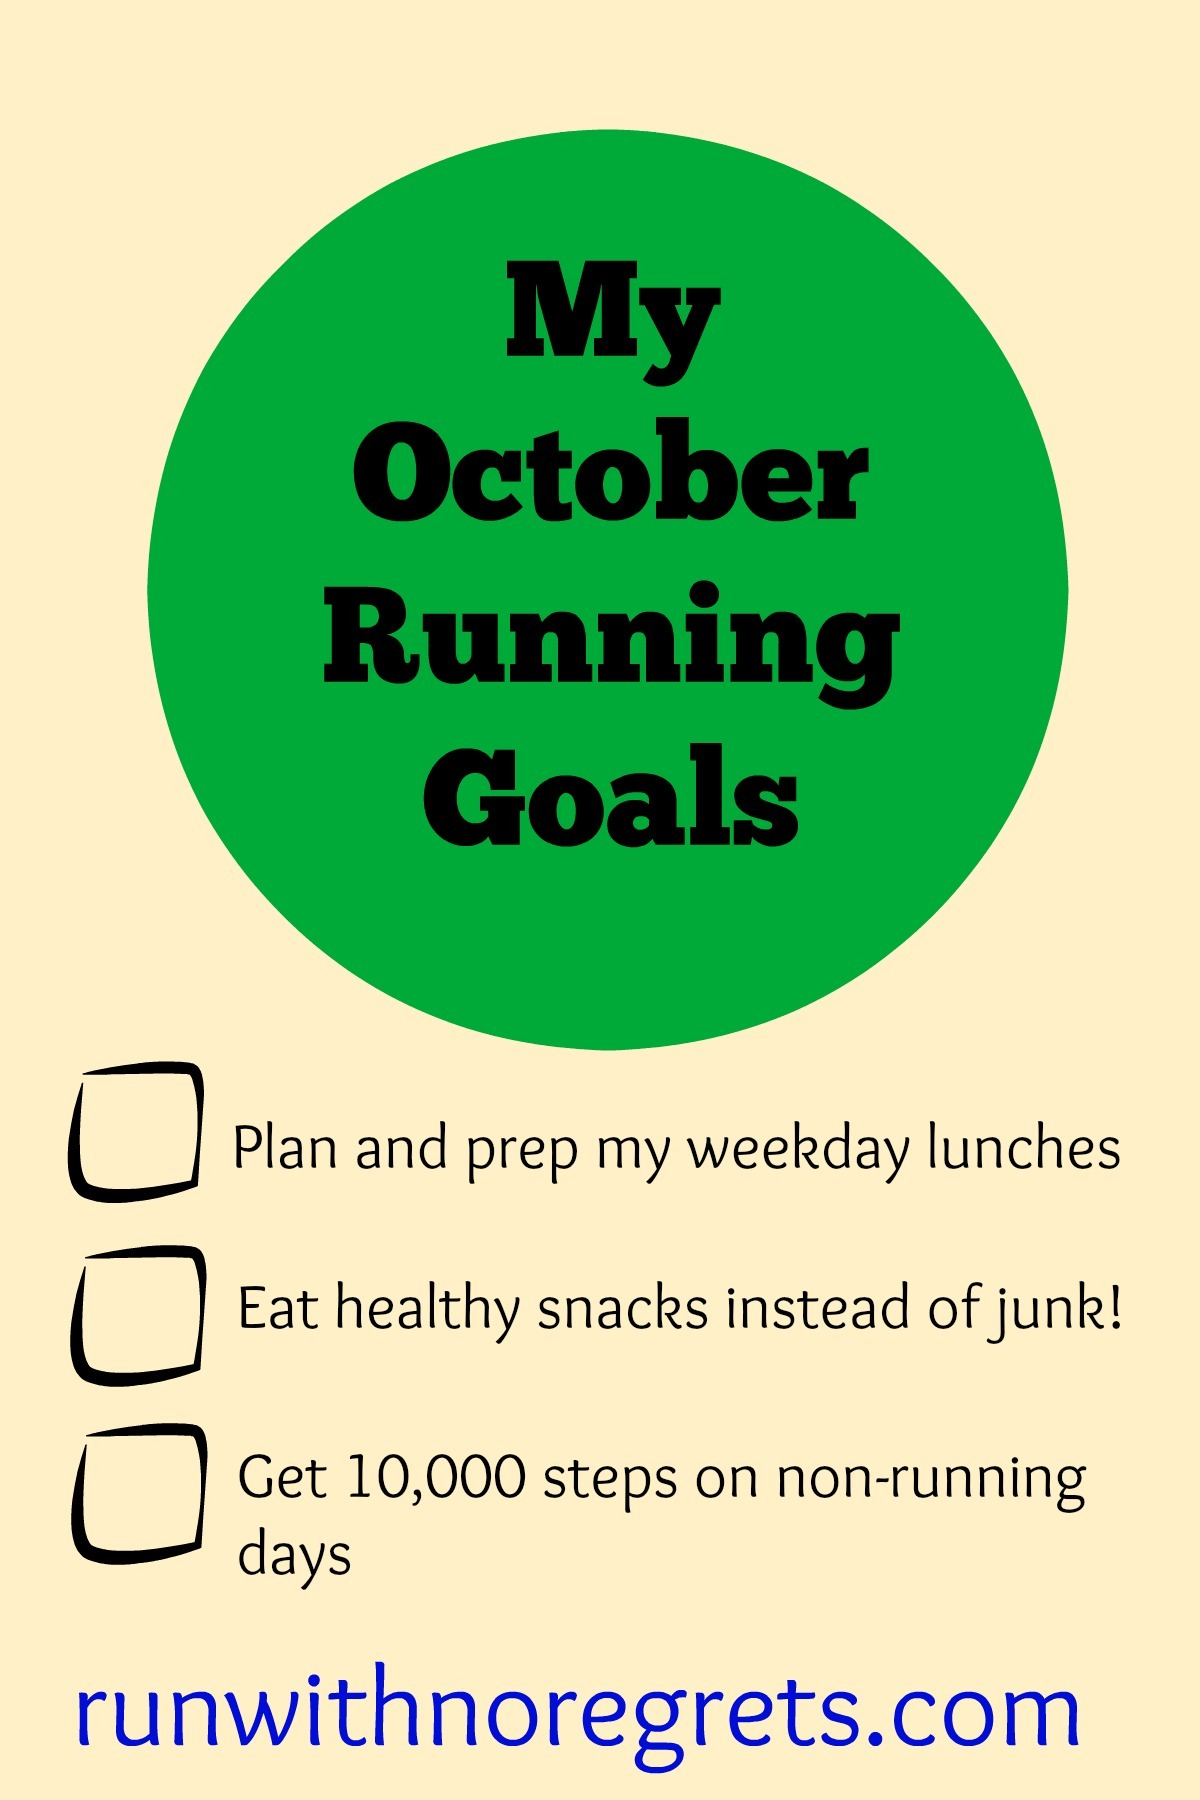 I'm sharing my running goals for October...writing down your goals helps so much with accountability! Get more running tips at runwithnoregrets.com!